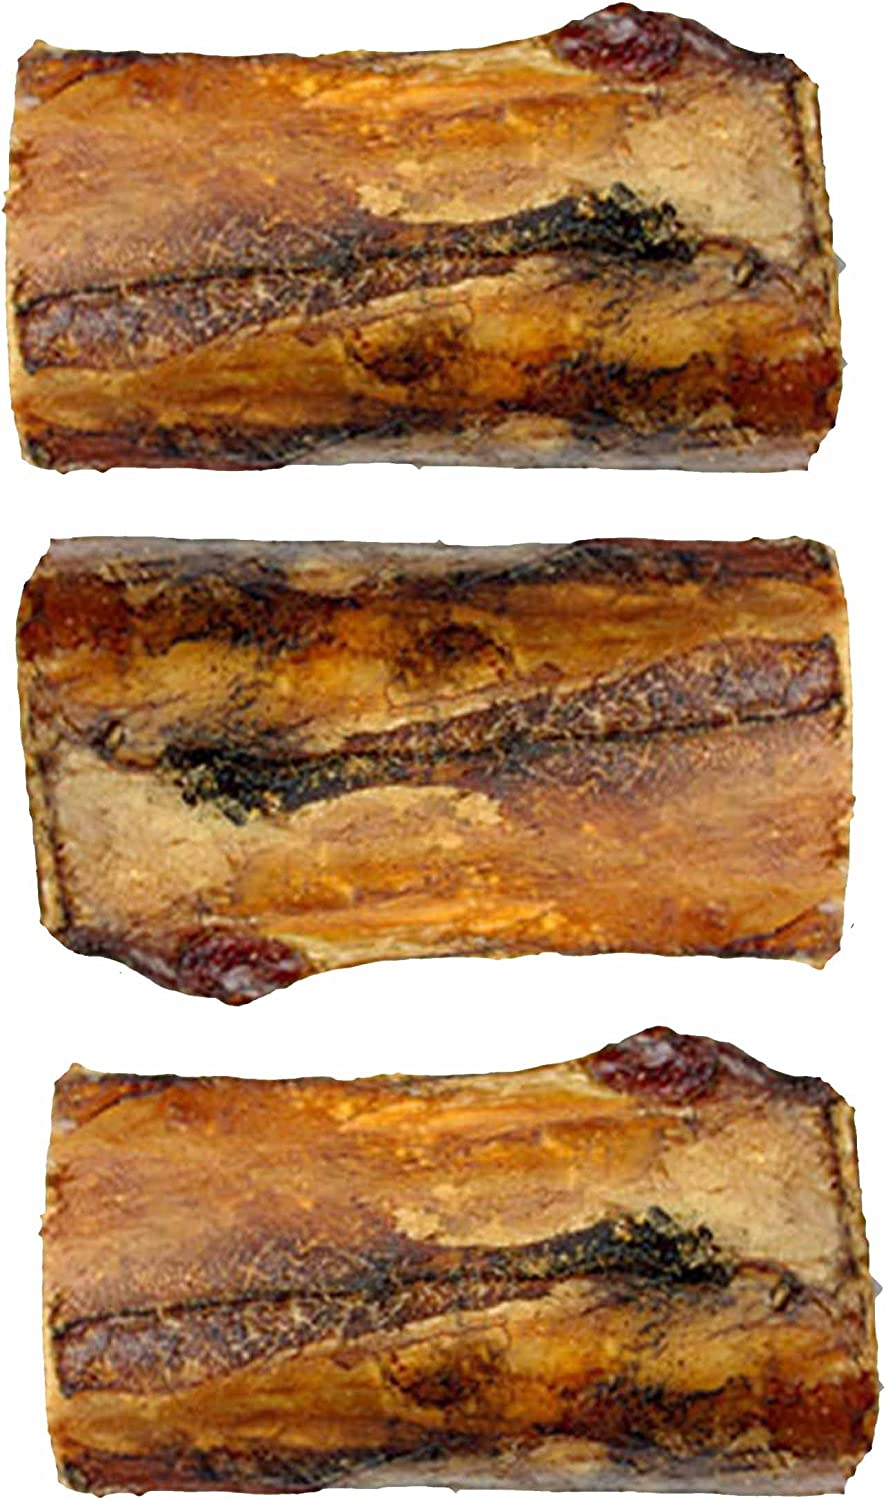 Venison Joe S Large Hickory Smoked Beef Bone, 3-Pack